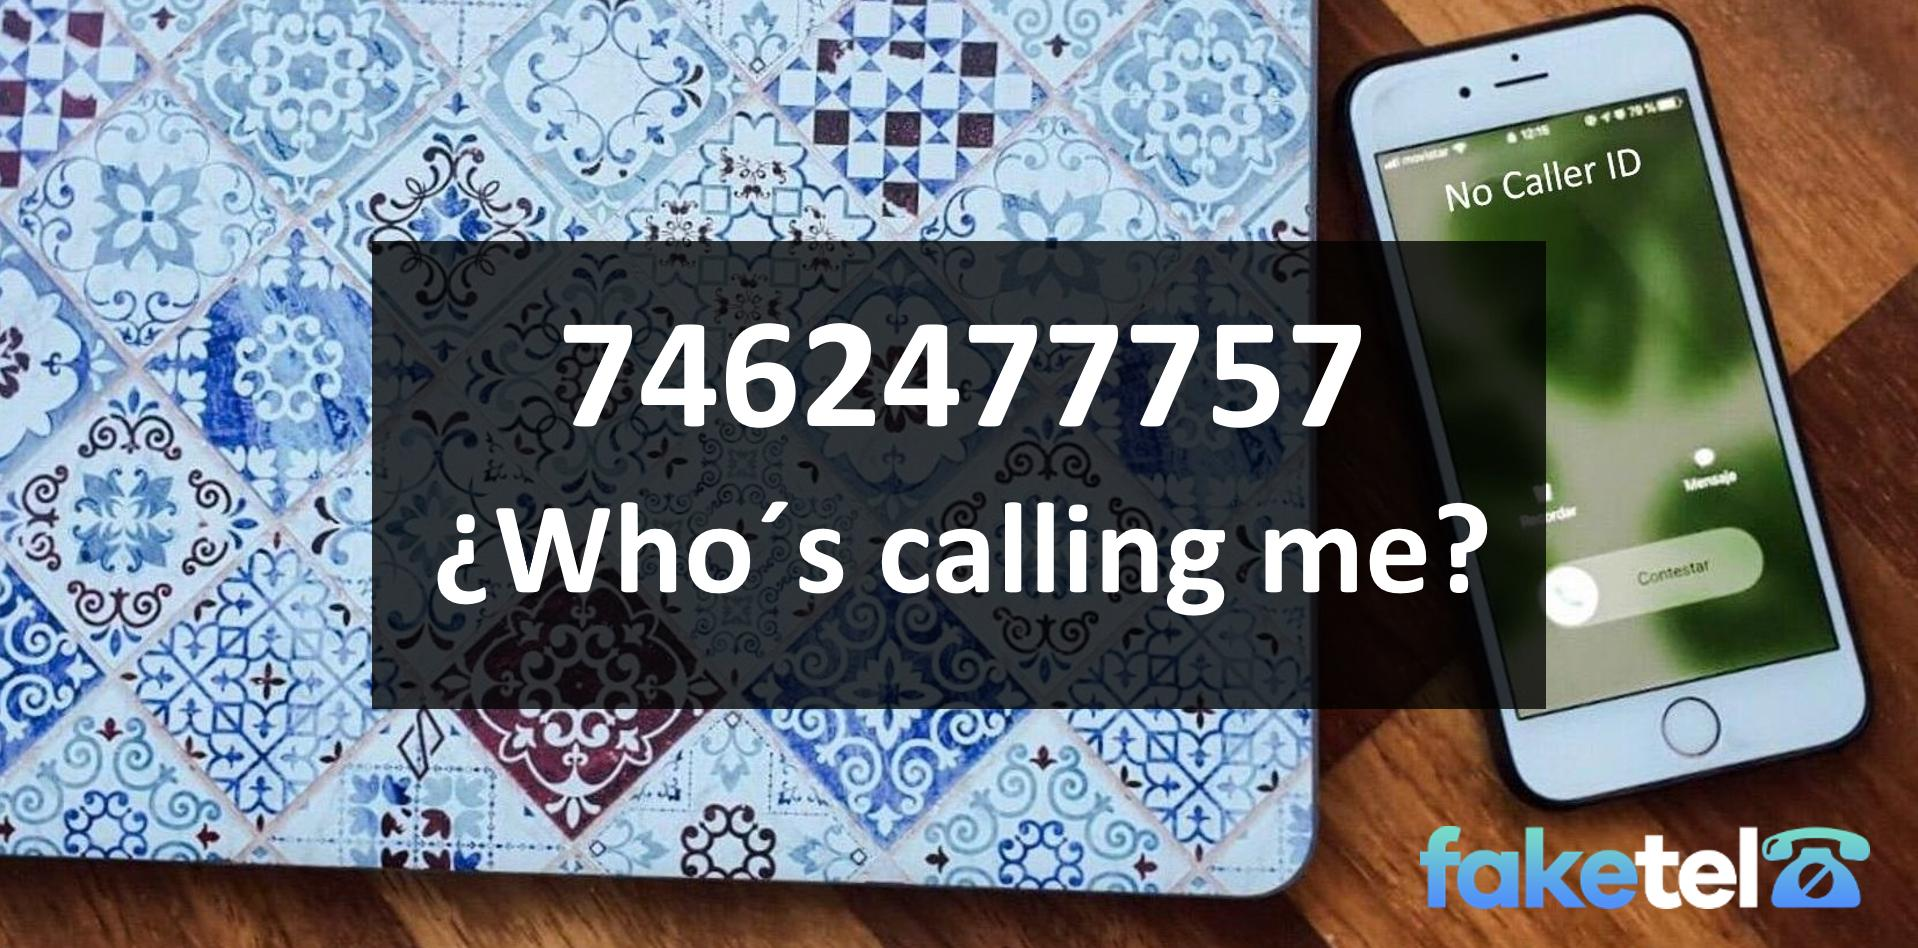 who is calling me 7462477757